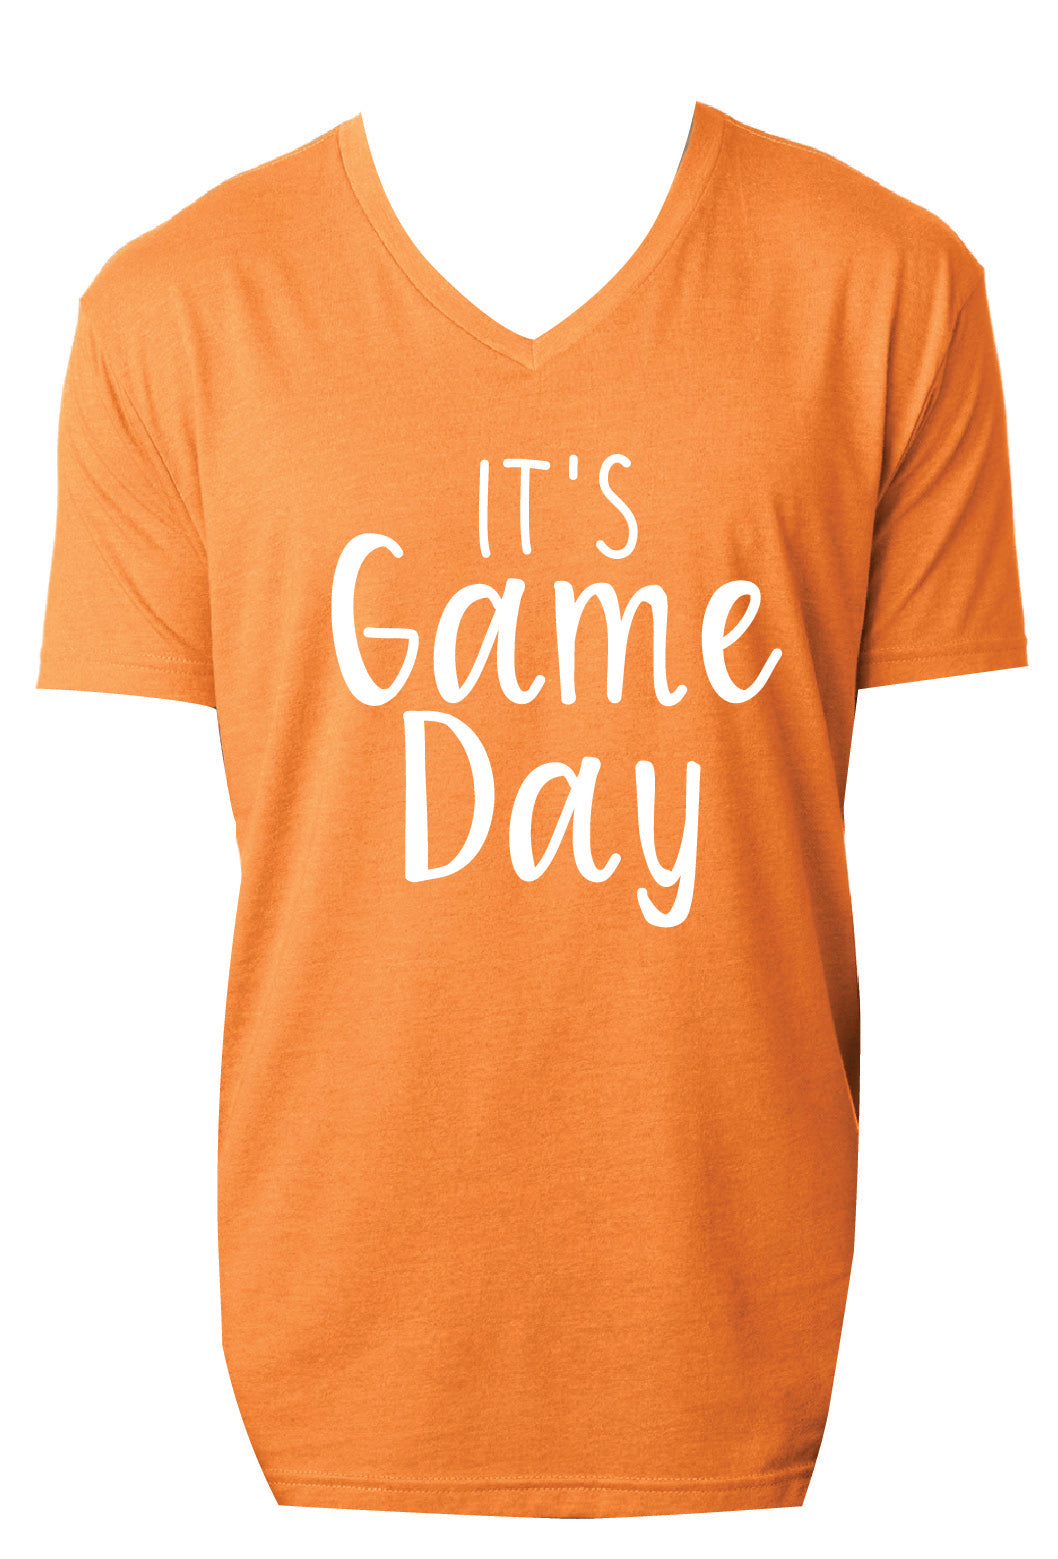 It's Game Day Tee